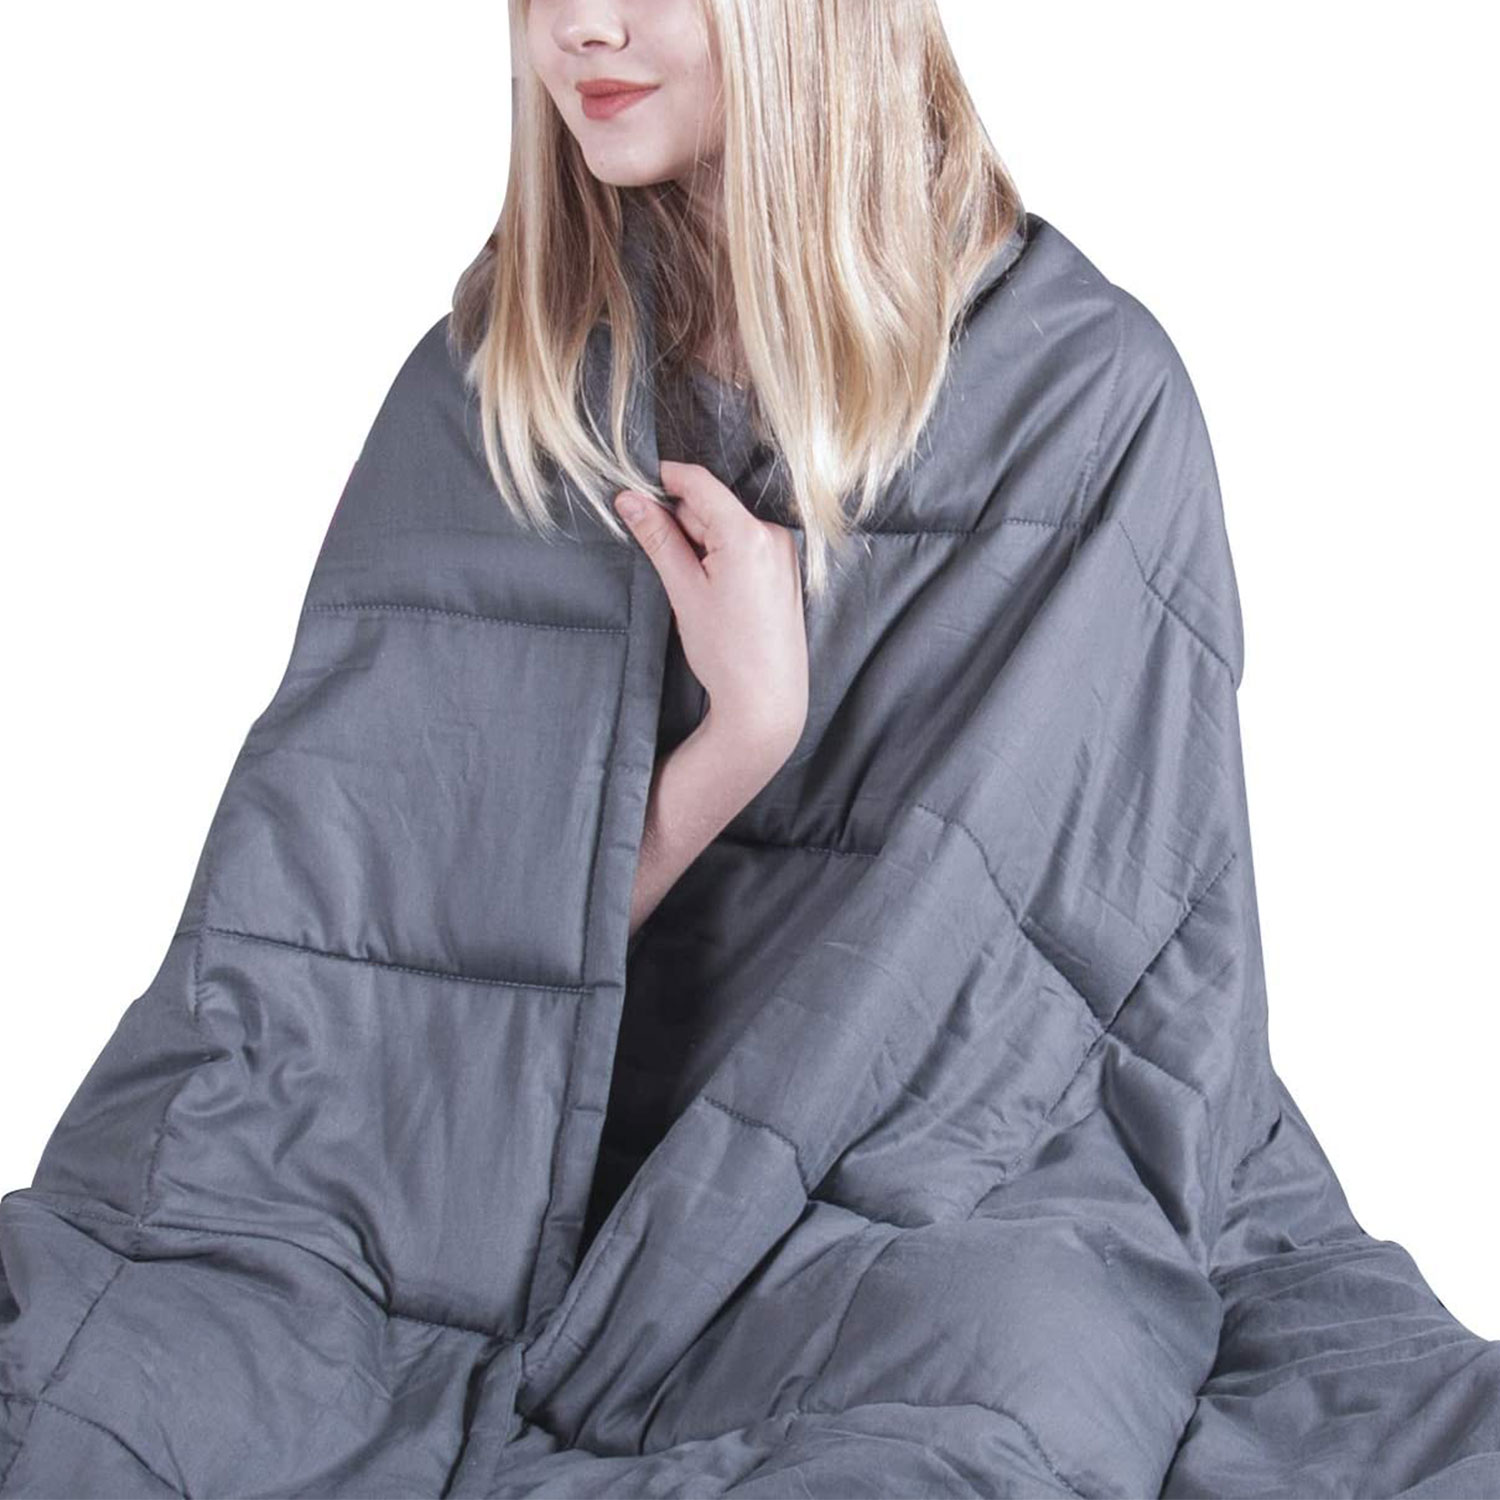 weighted blanket